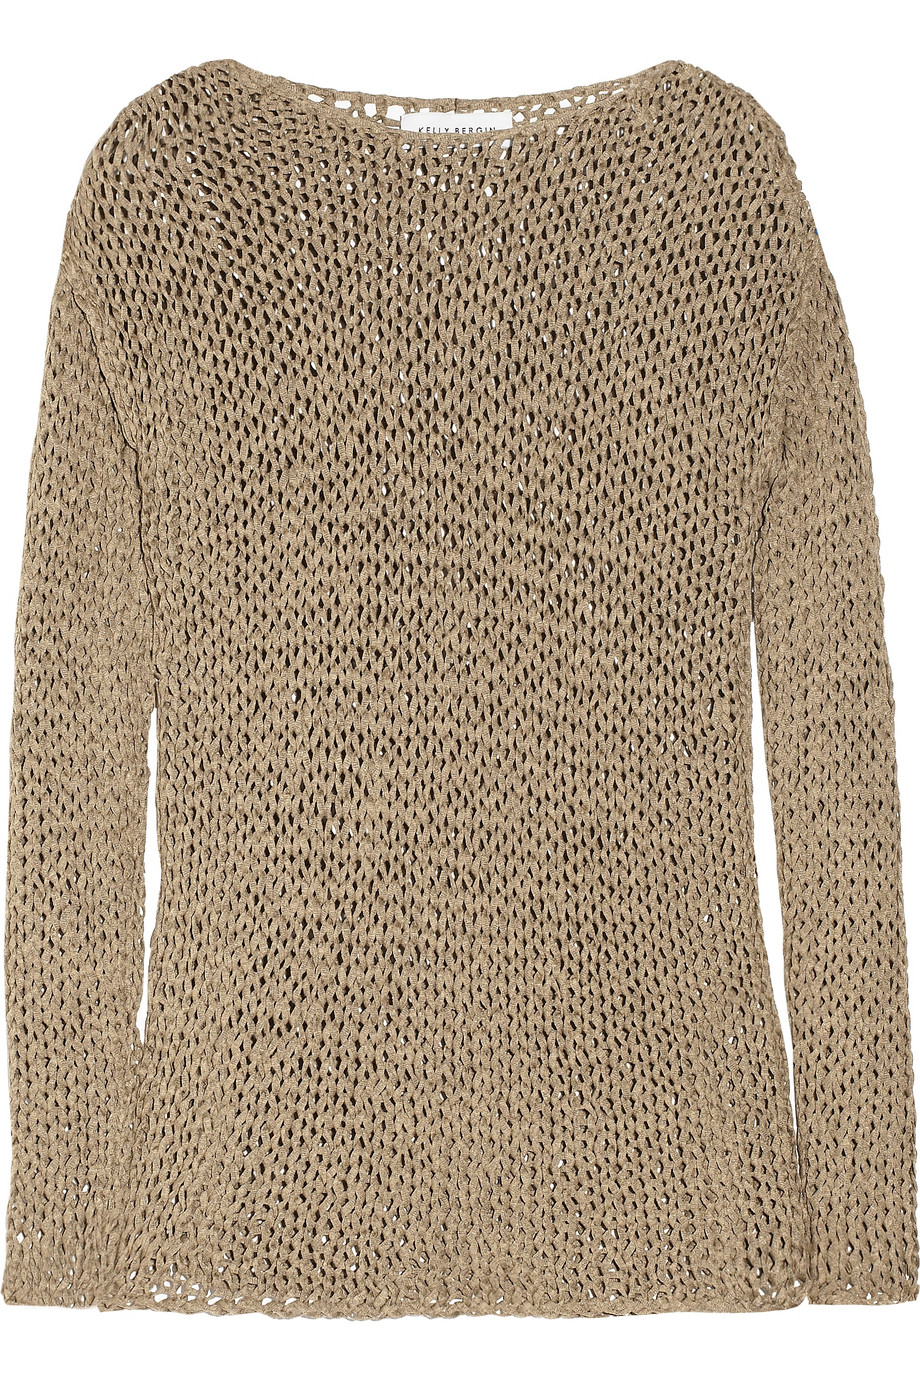 Kelly Bergin Open Knit